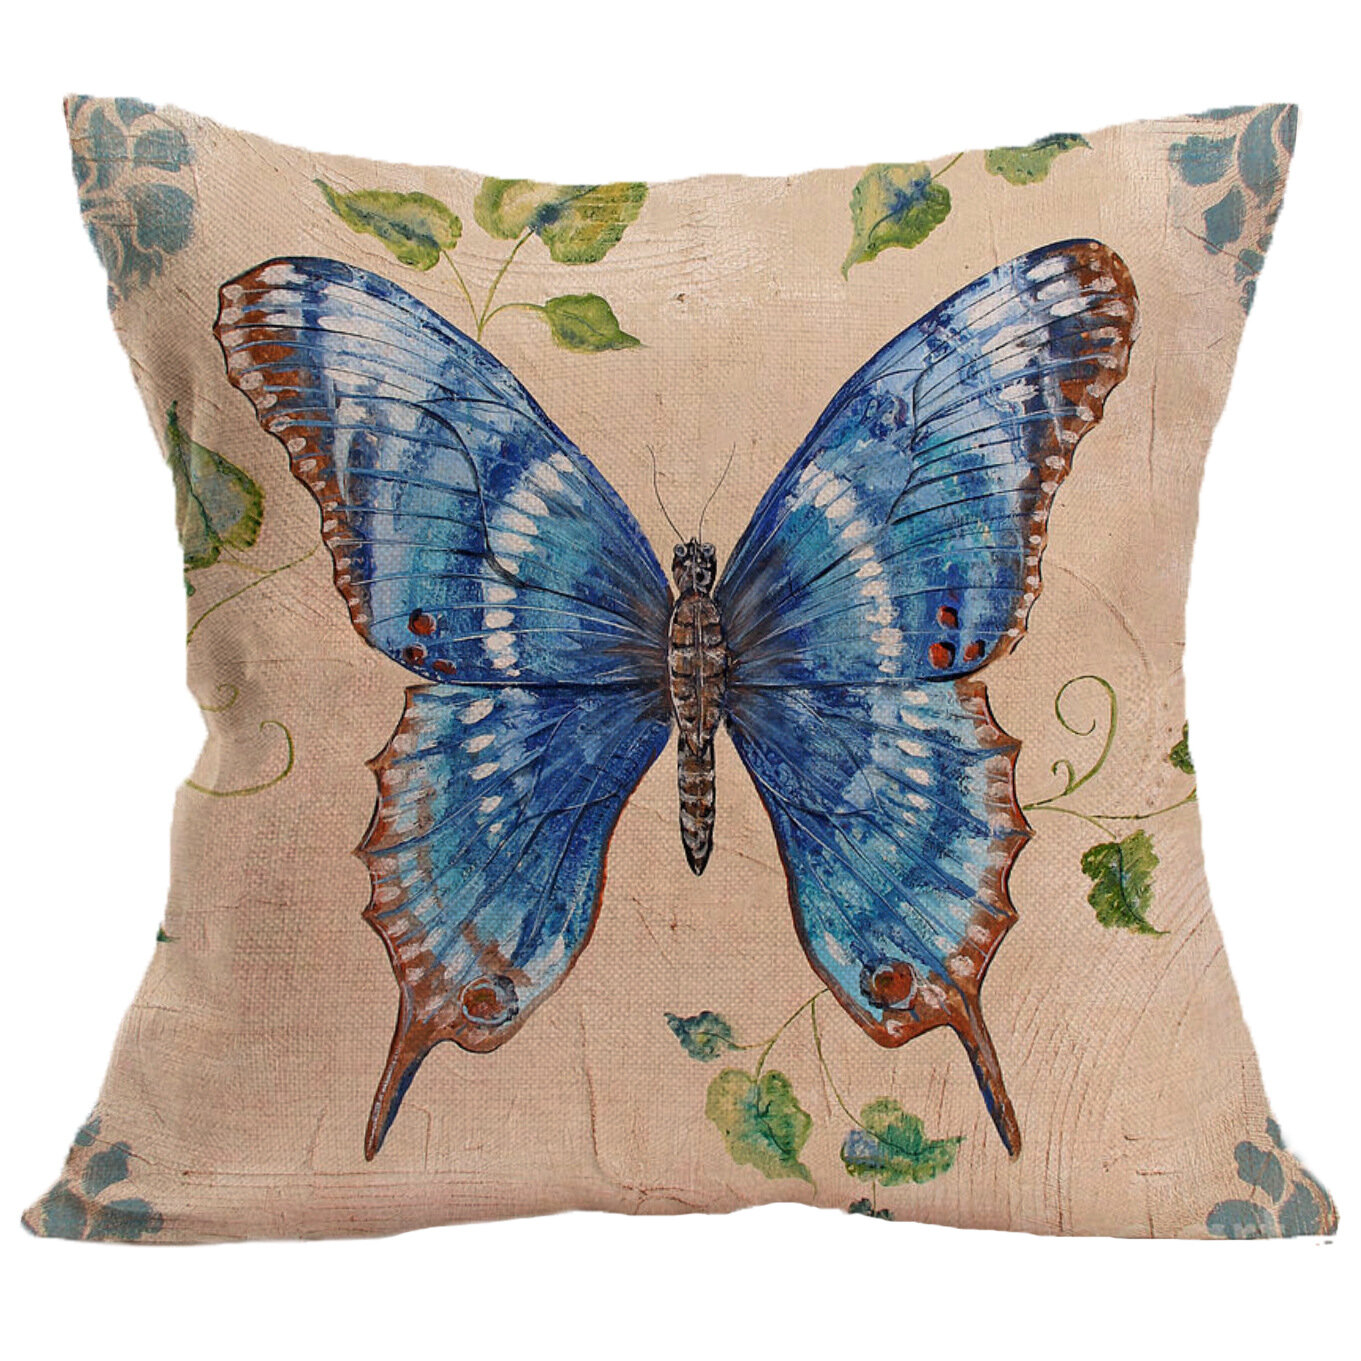 Cartoon Butterfly Cotton Linen Cushion Cover Square House Decor Pillowcase